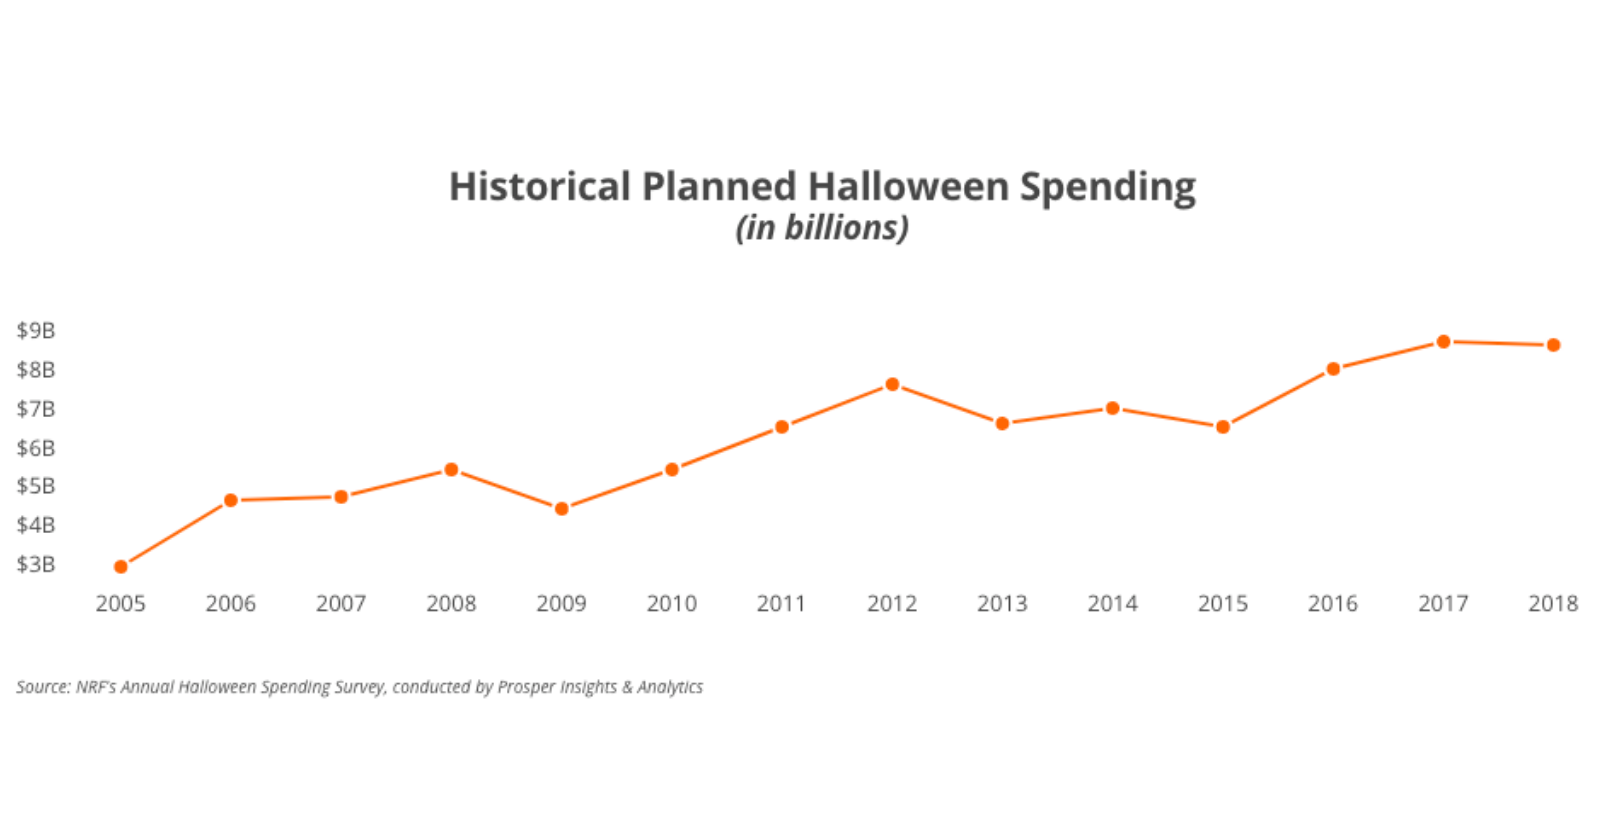 Chart of Historical Planned Halloween Spending